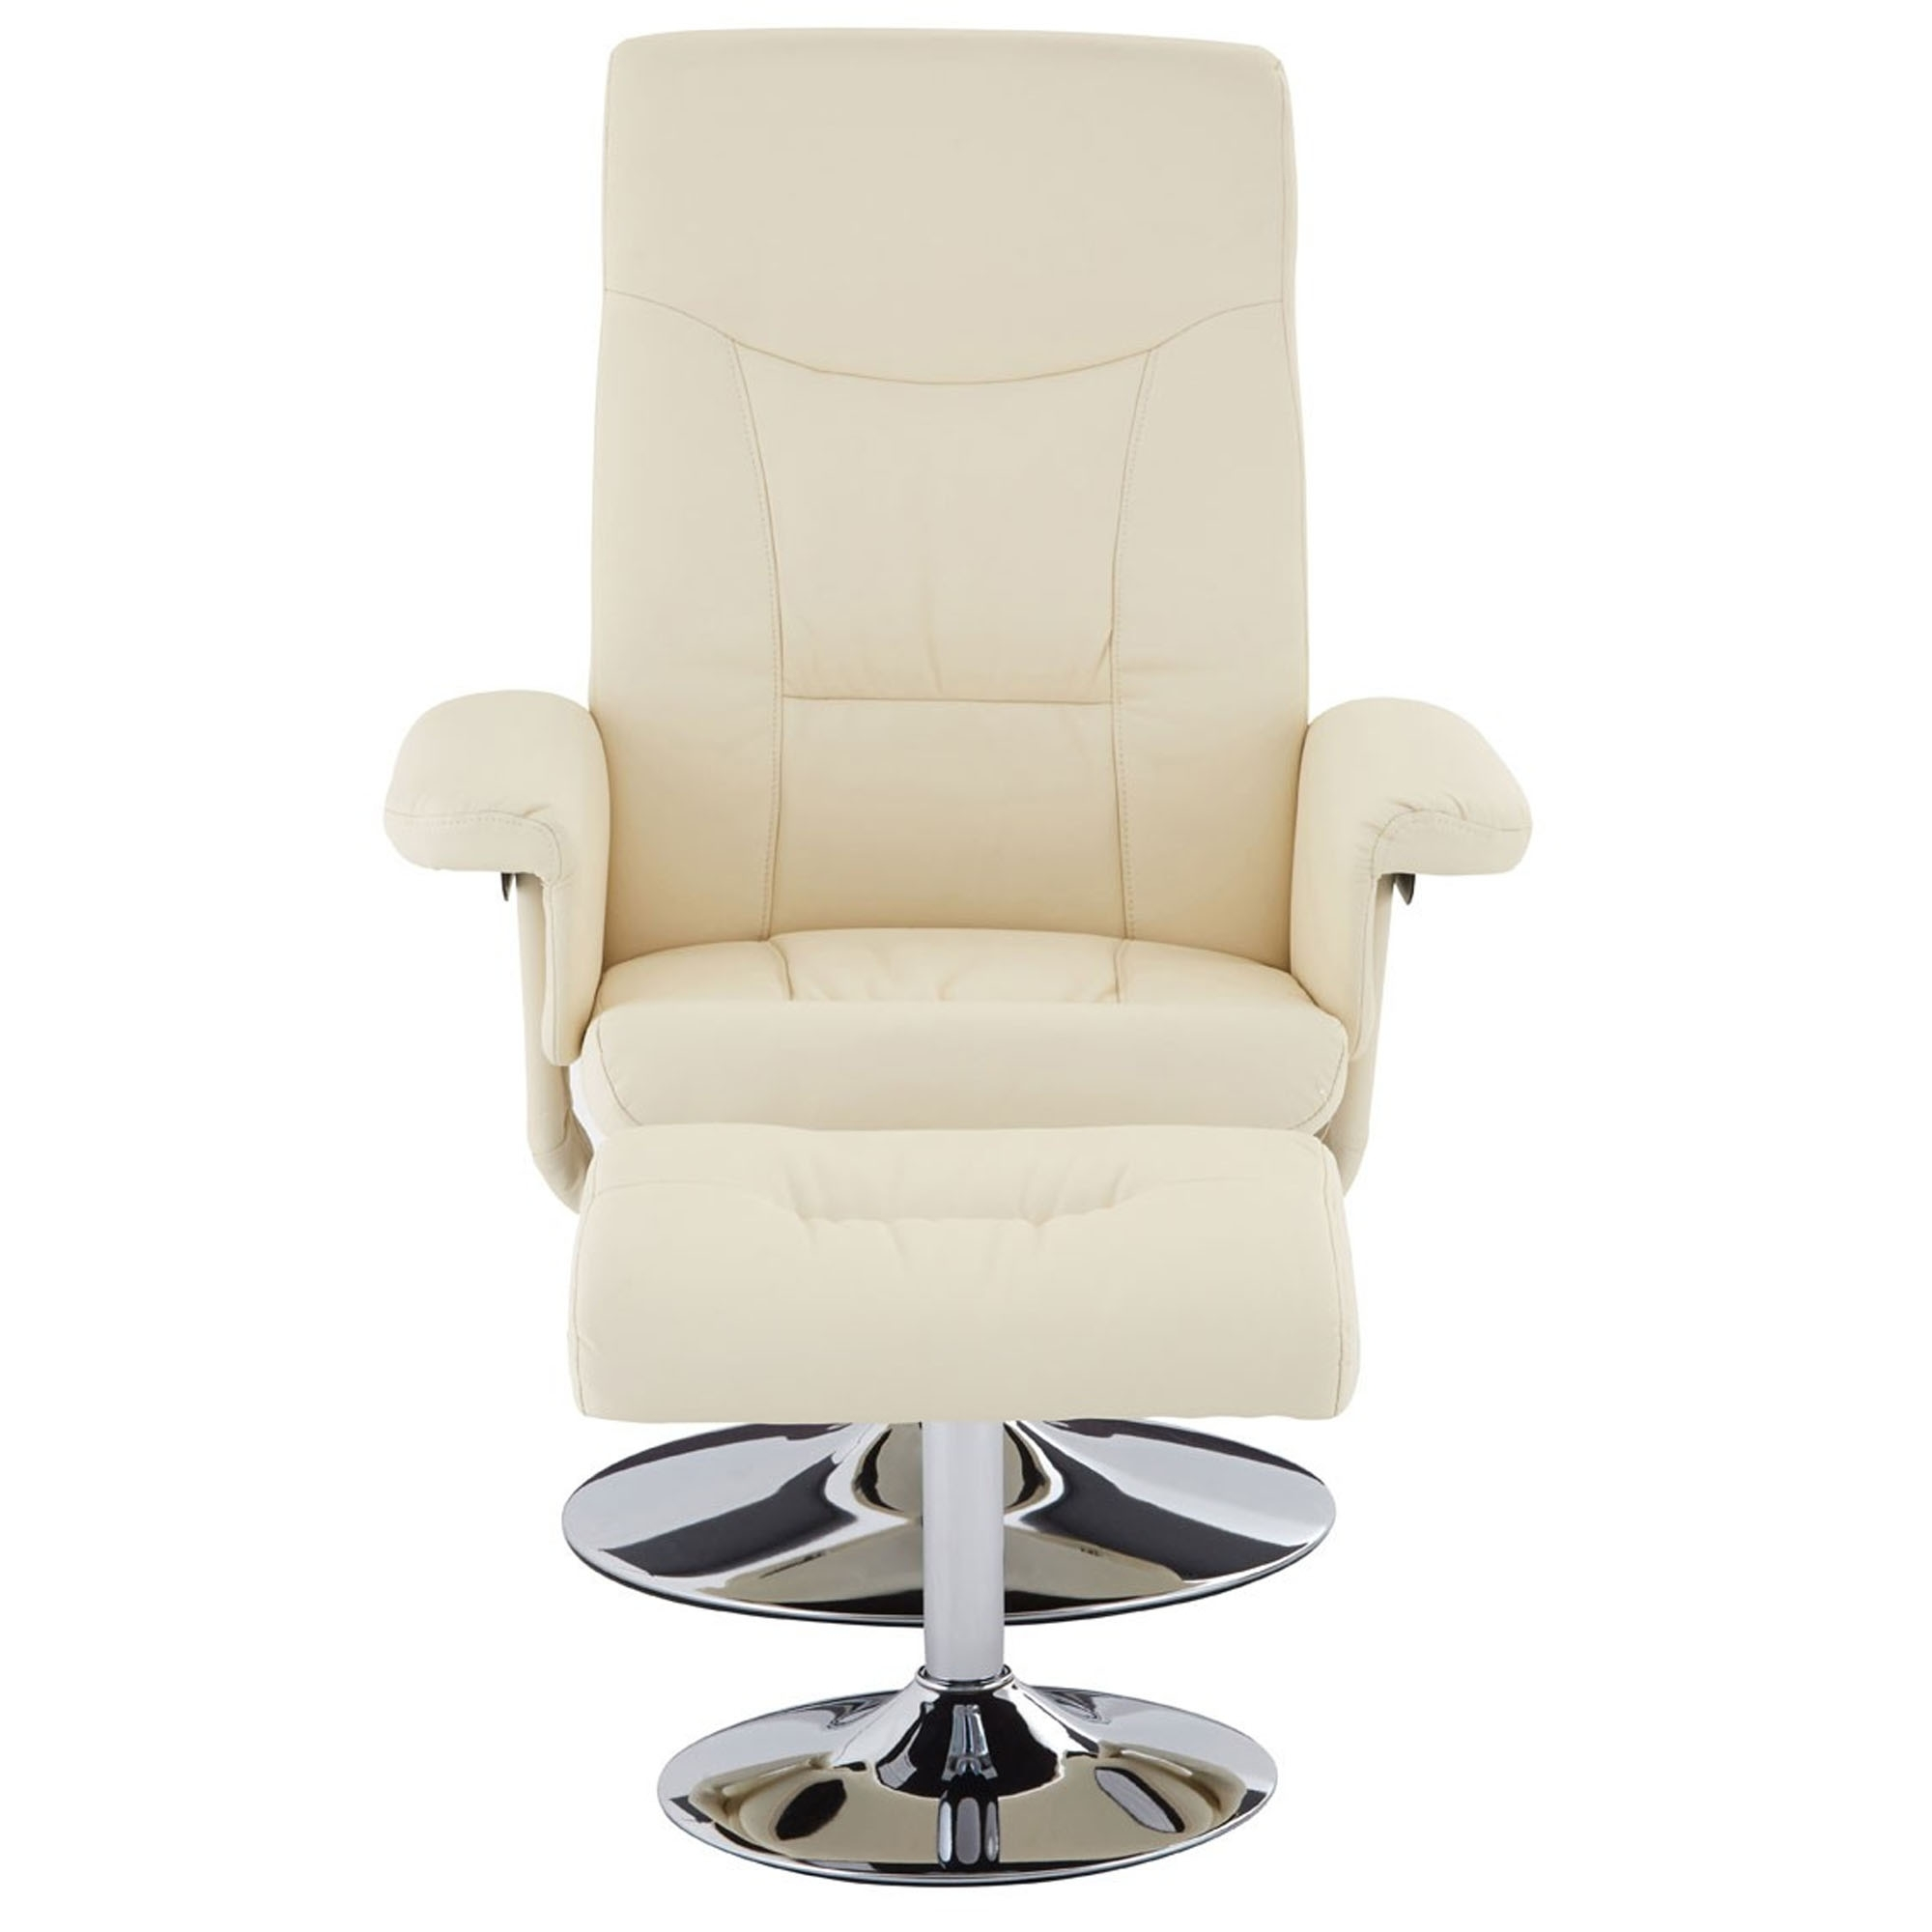 chairs and pembroke recliner celebrity chair standard sofas